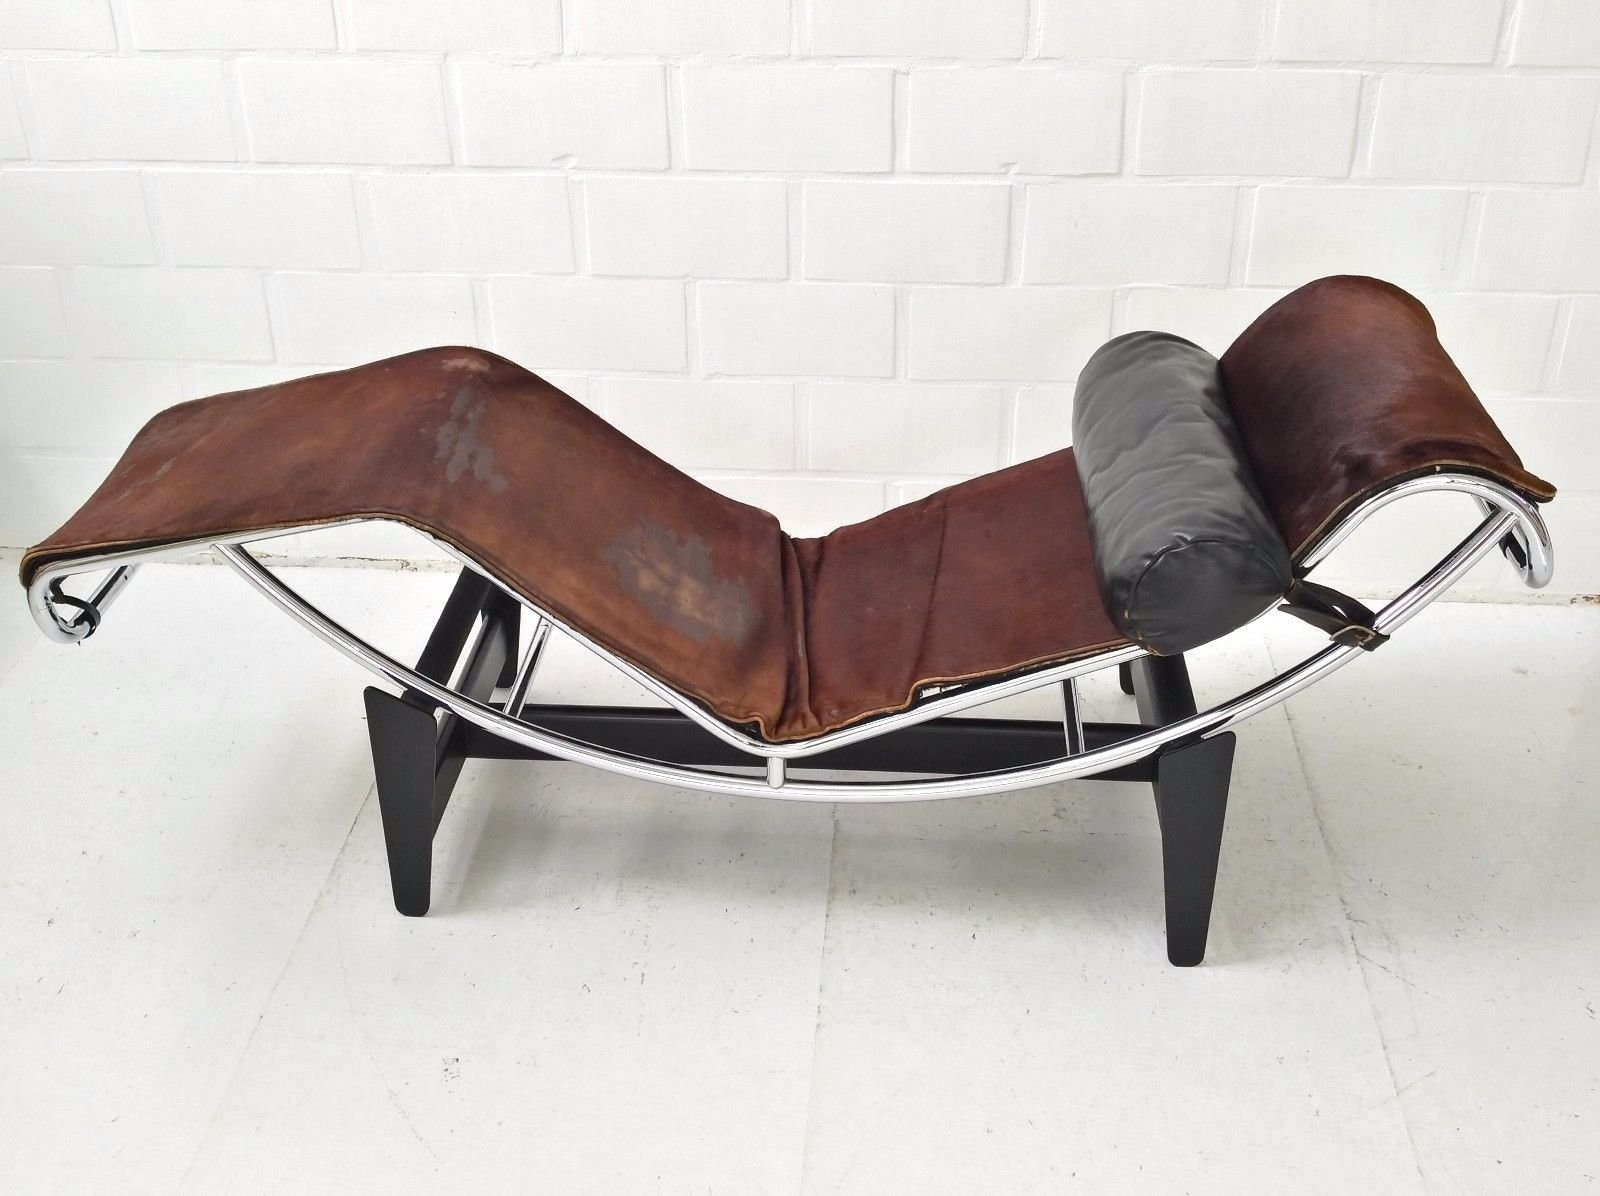 Lc4 chaise longue by le corbusier charlotte perriand for Chaise longue le corbusier prezzo